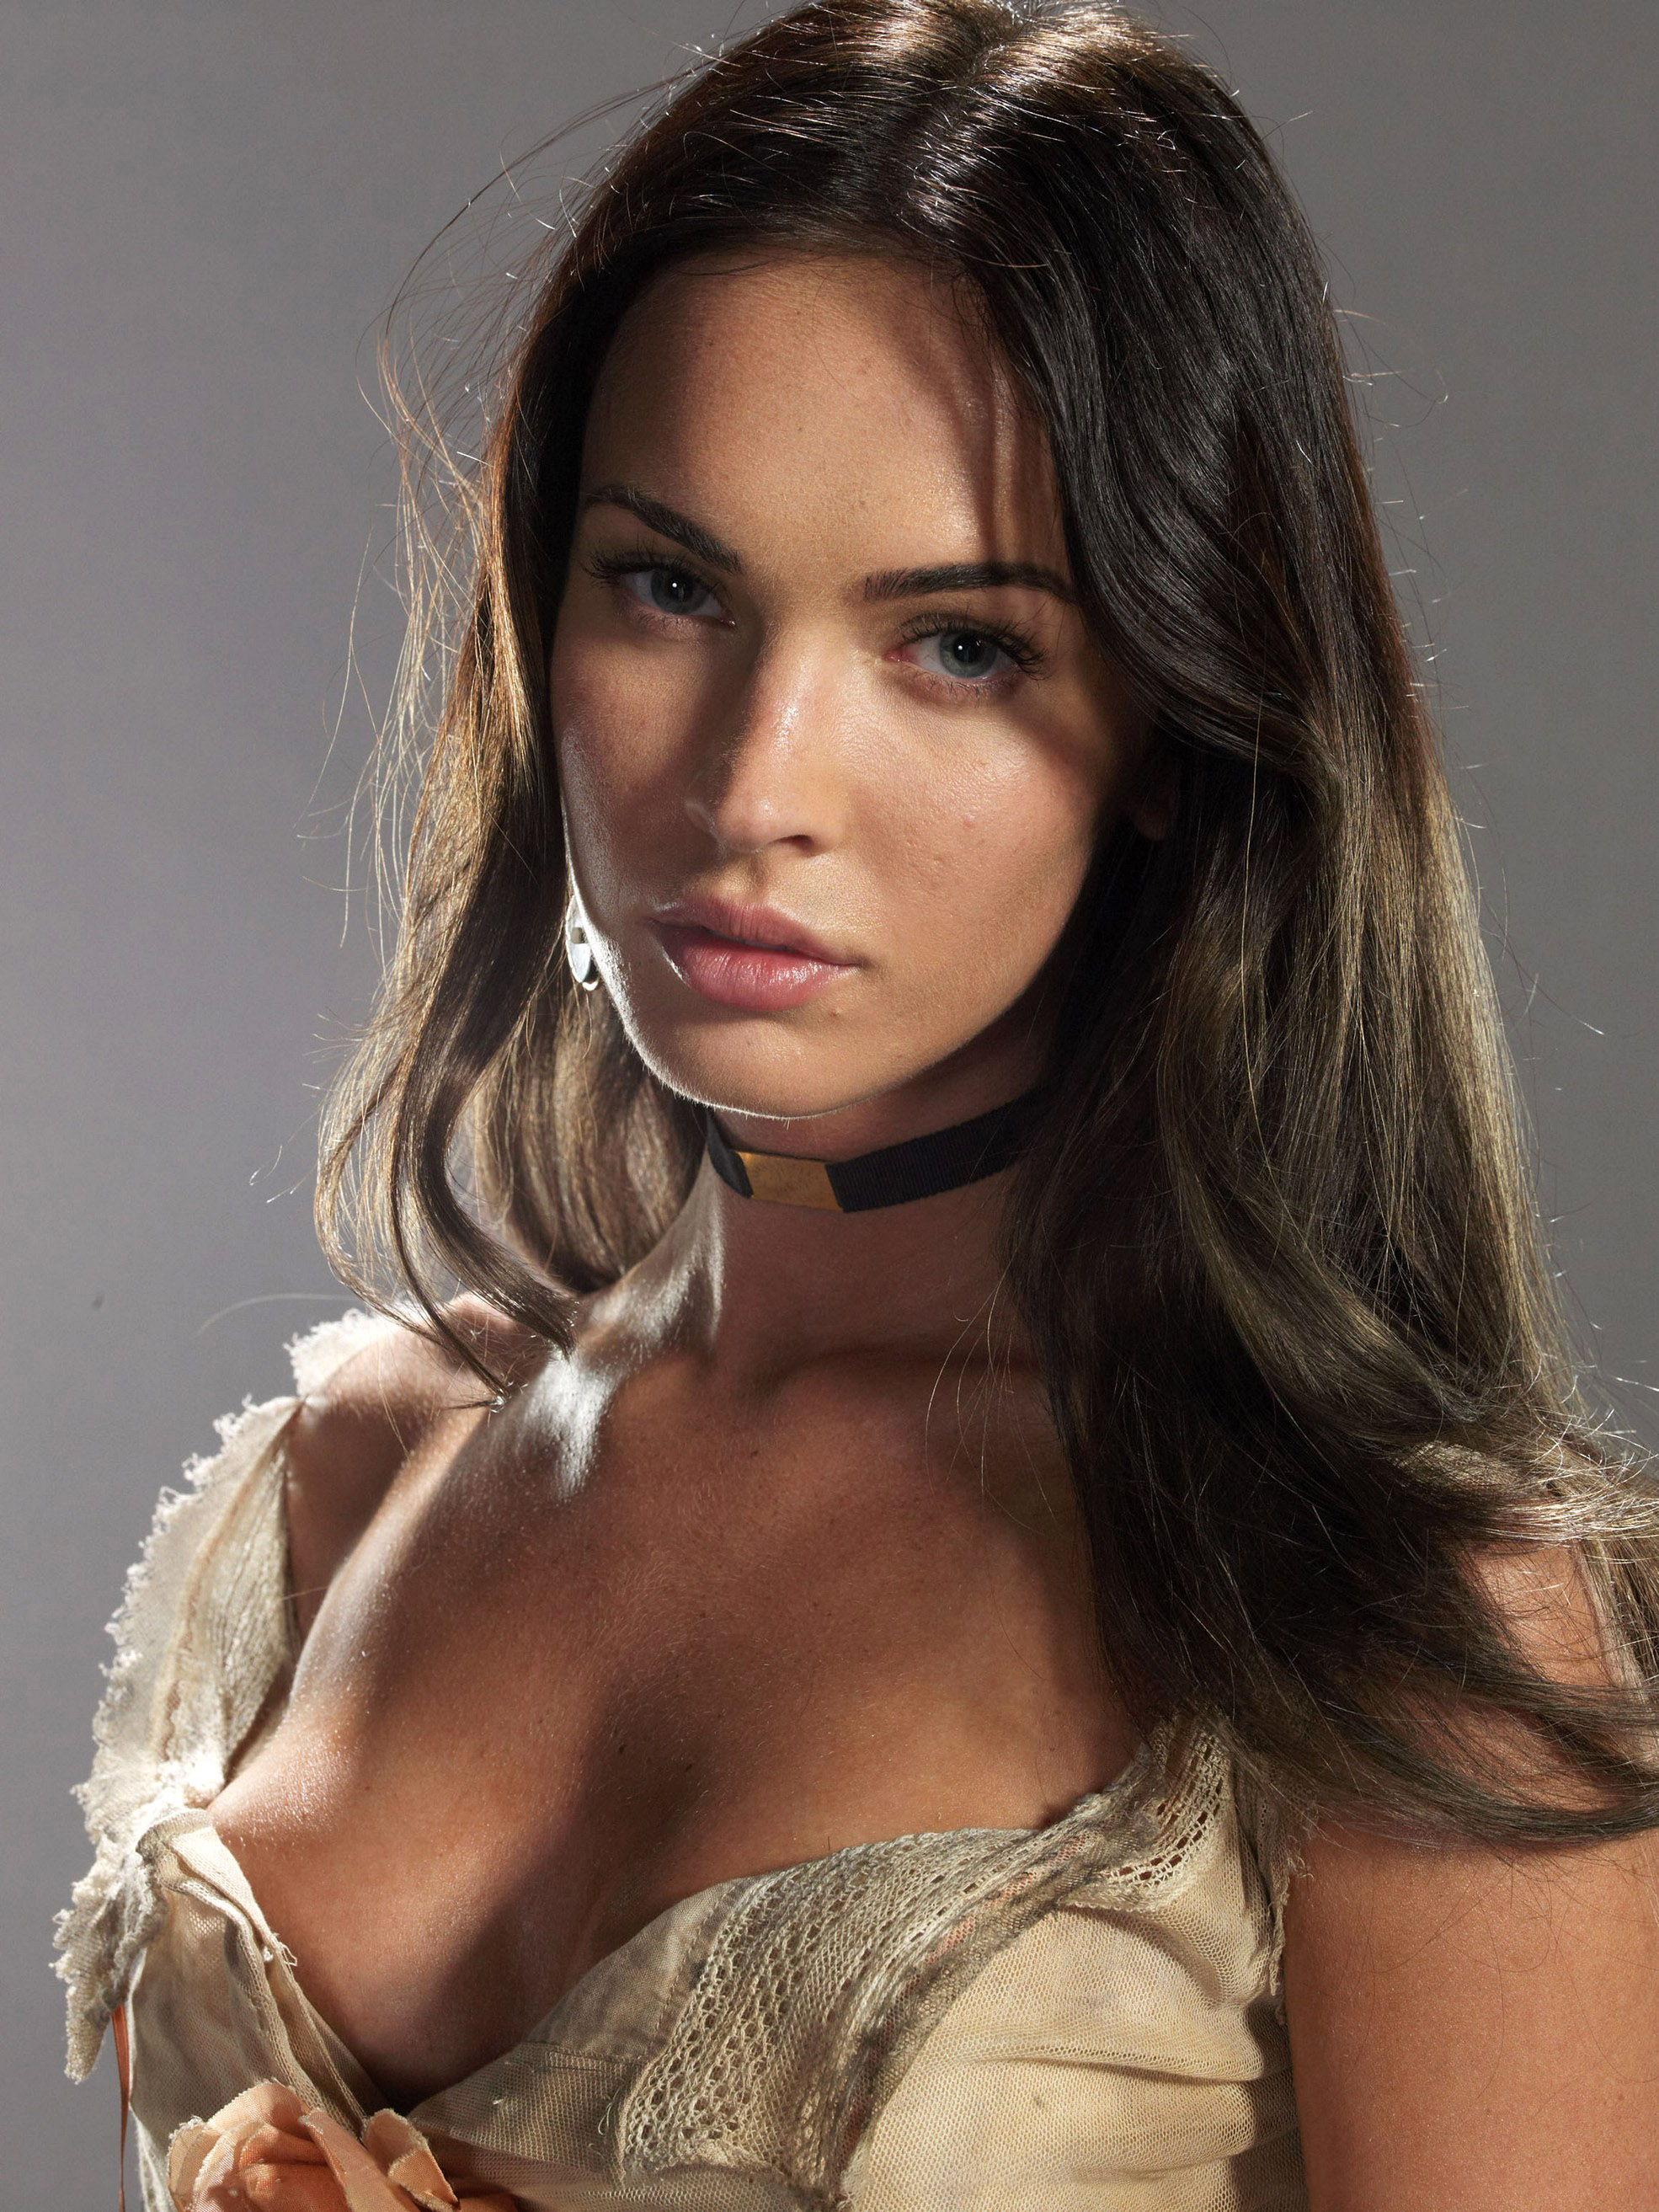 Megan_Fox_-_Jonah_Hex_promotional_shoot_01